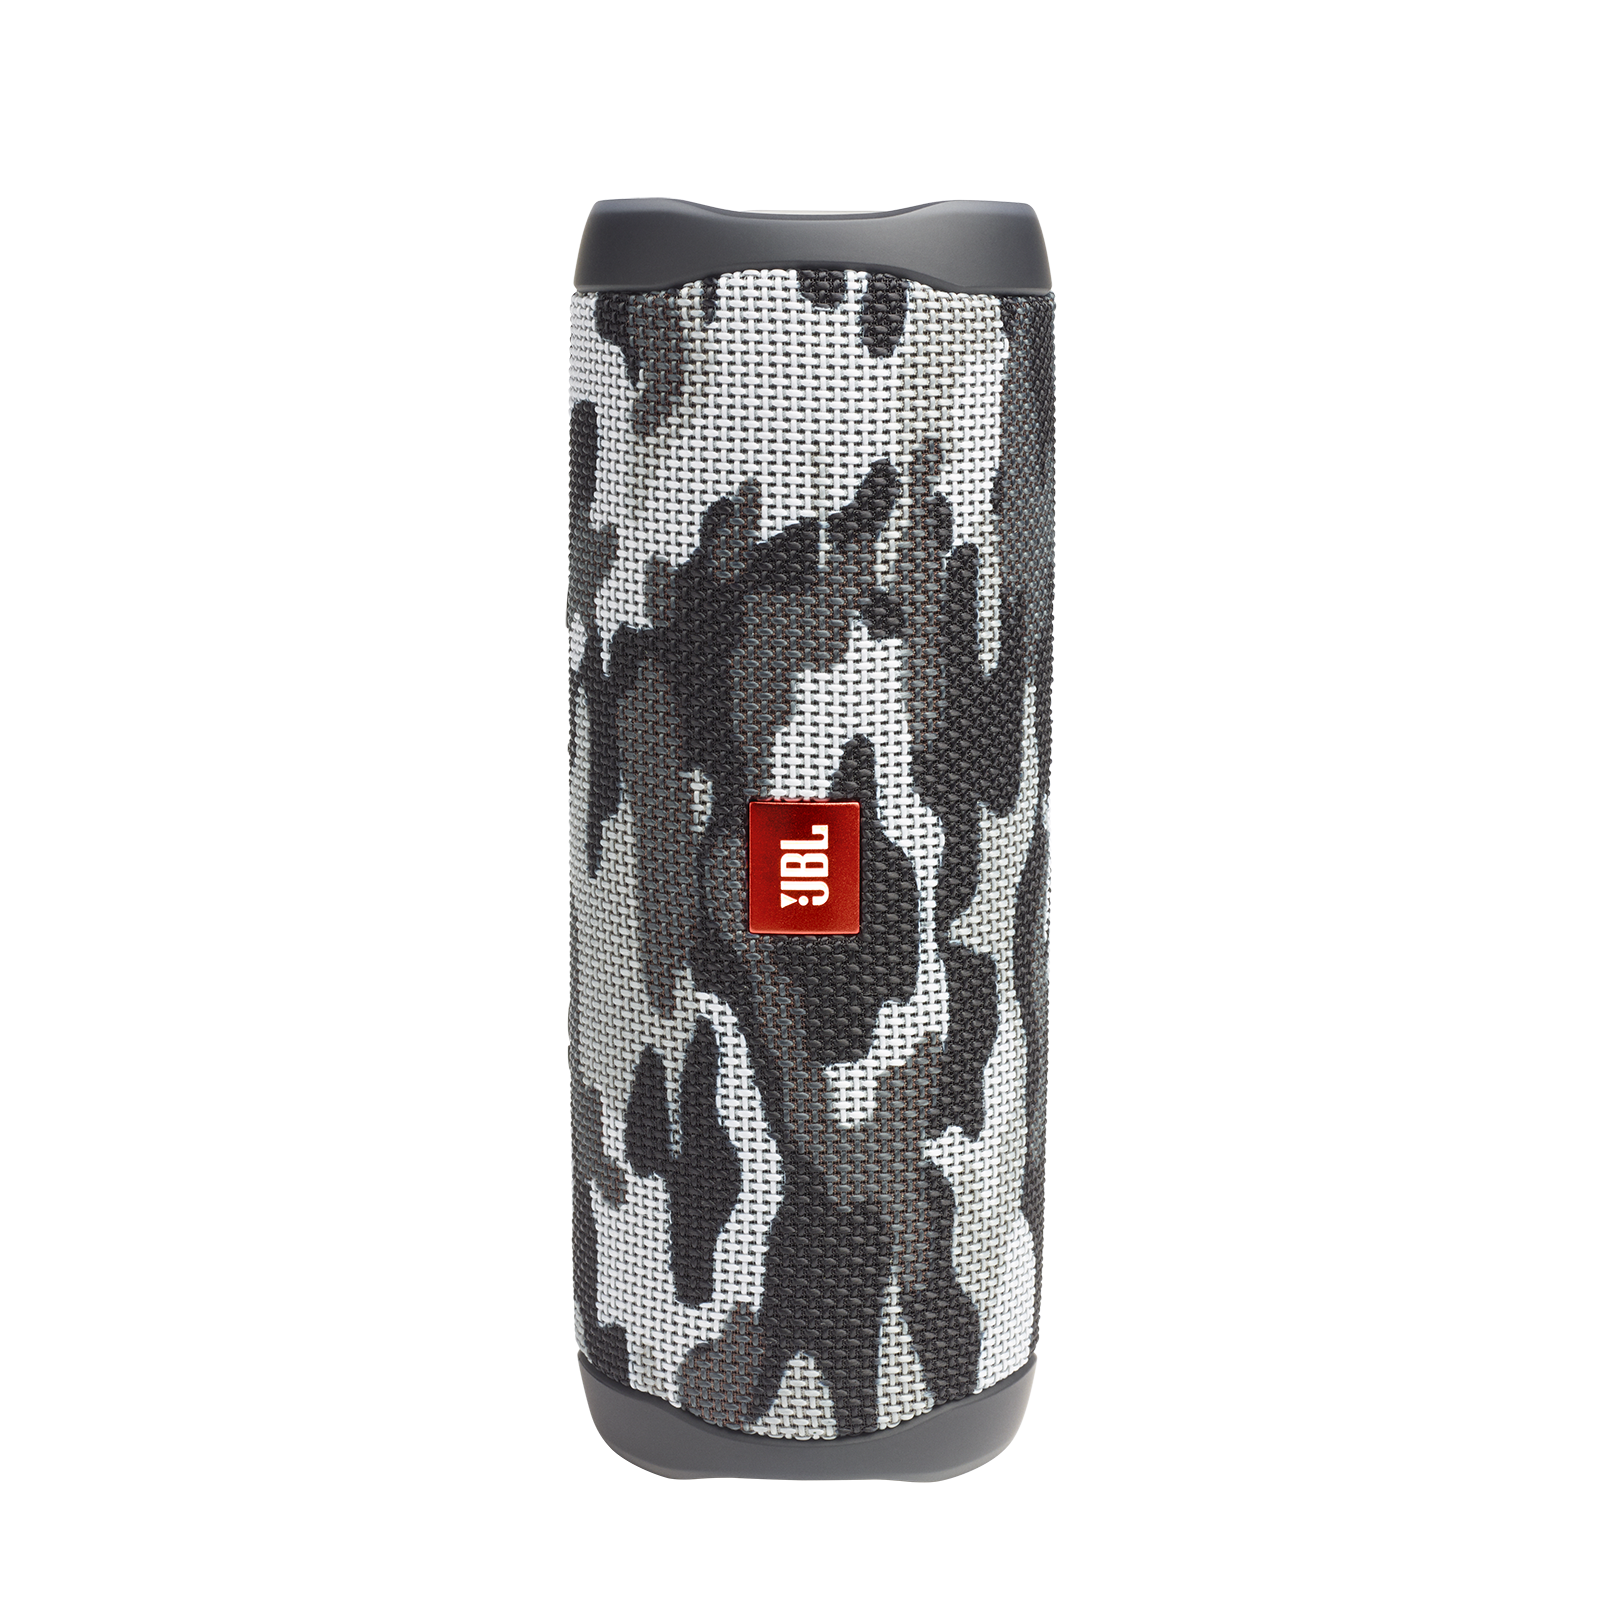 JBL FLIP 5 - Black Camo - Portable Waterproof Speaker - Hero